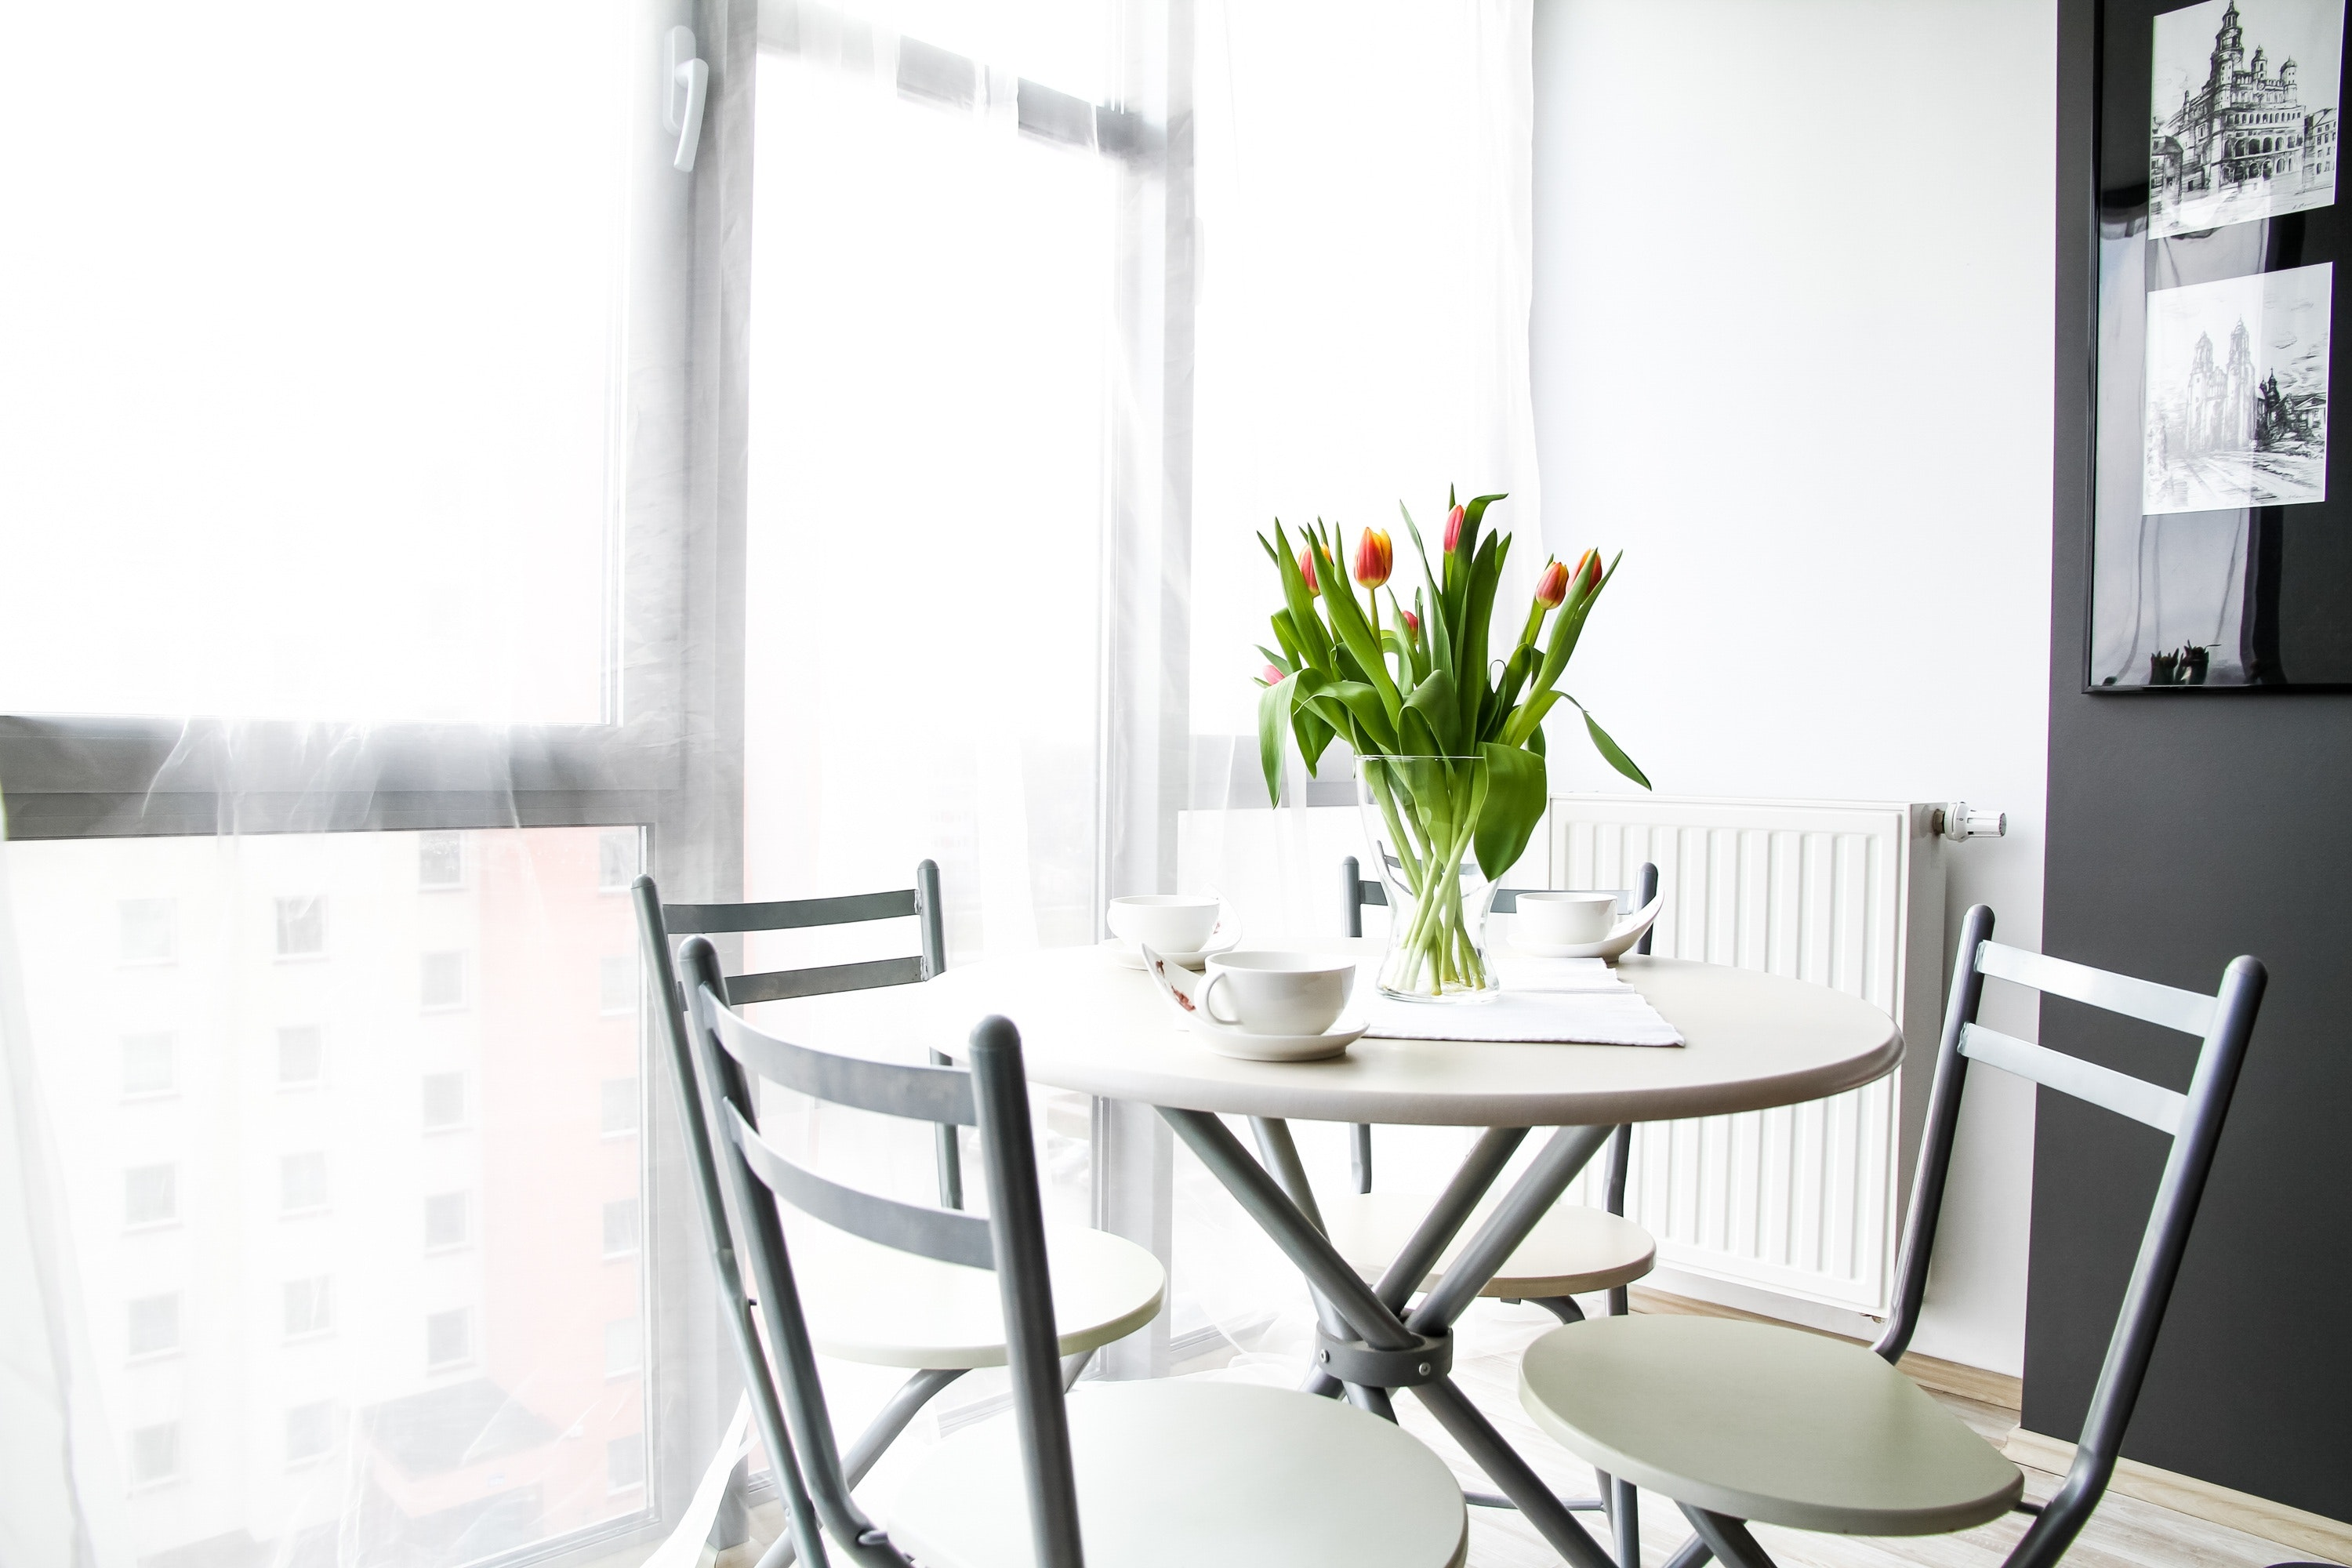 Image of a furnished kitchen in a rental apartment